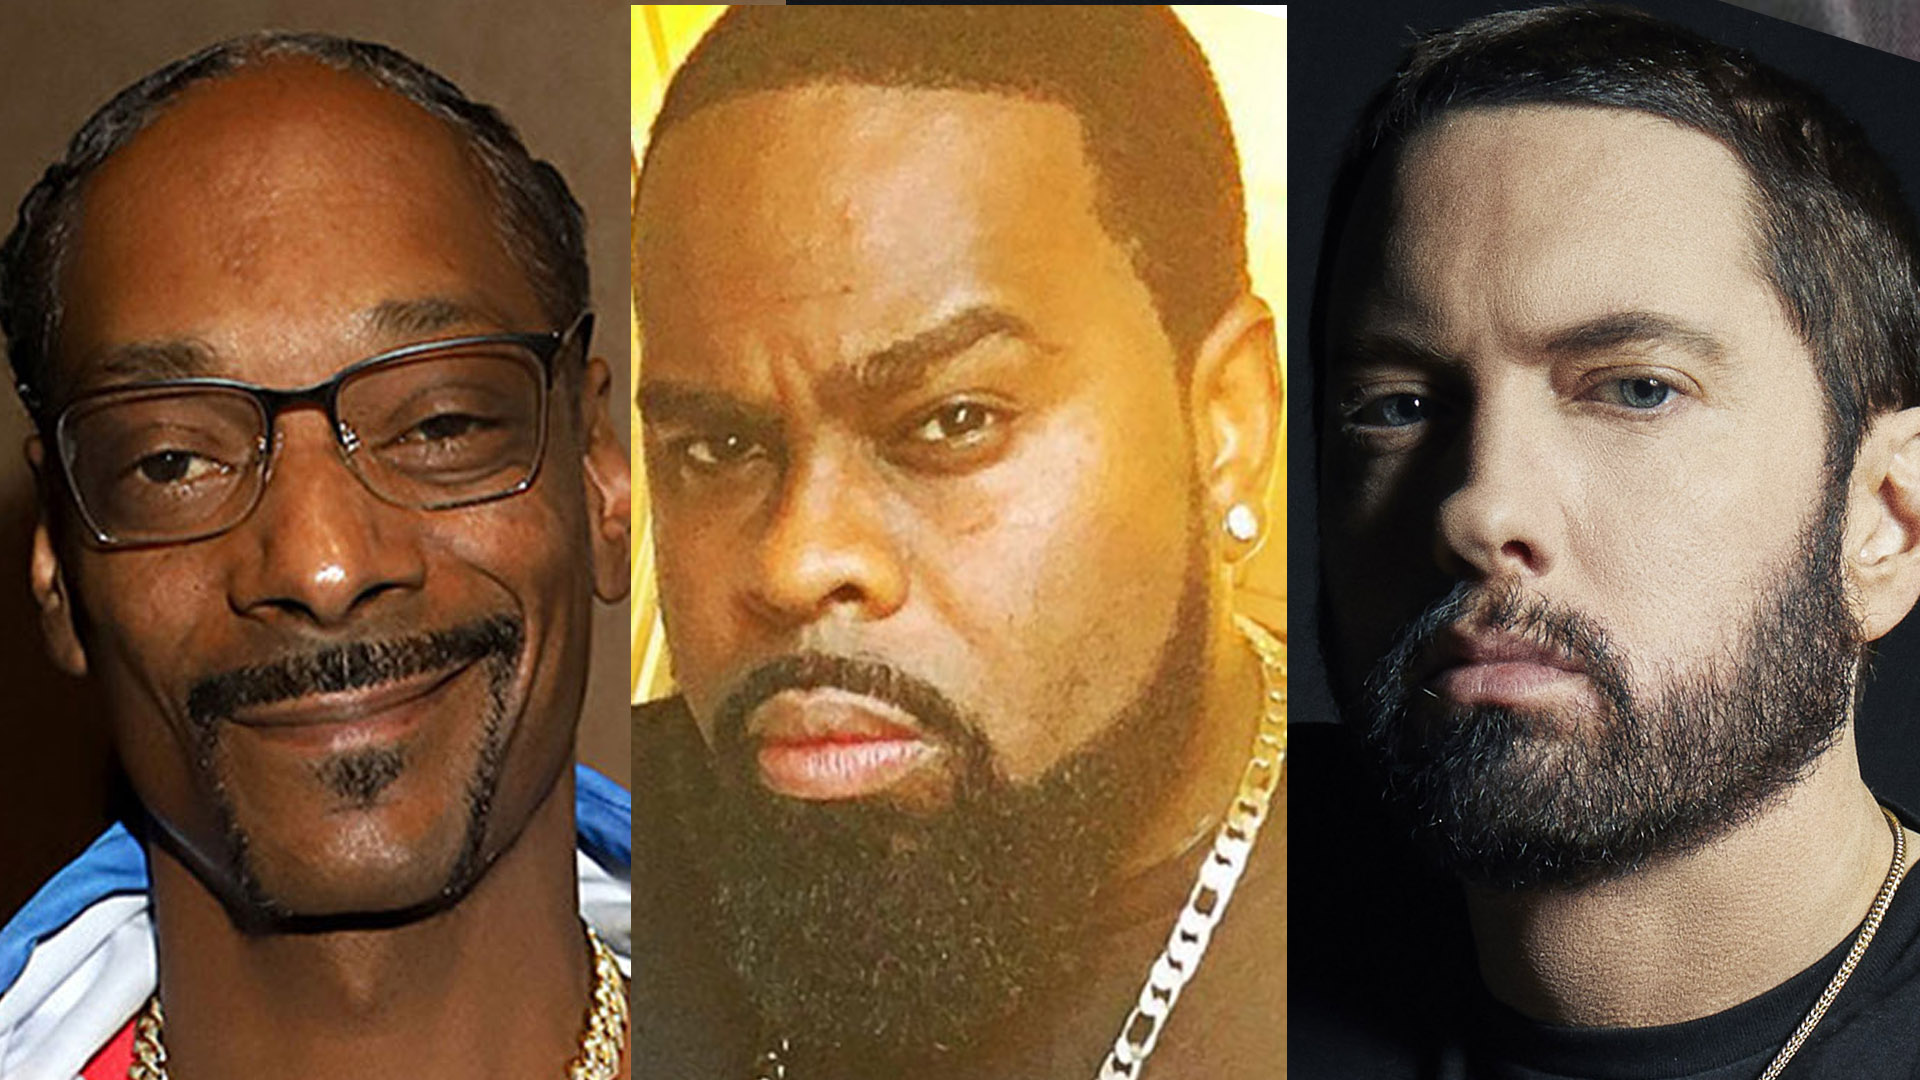 KXNG Crooked on Eminem vs. Snoop Dogg Beef